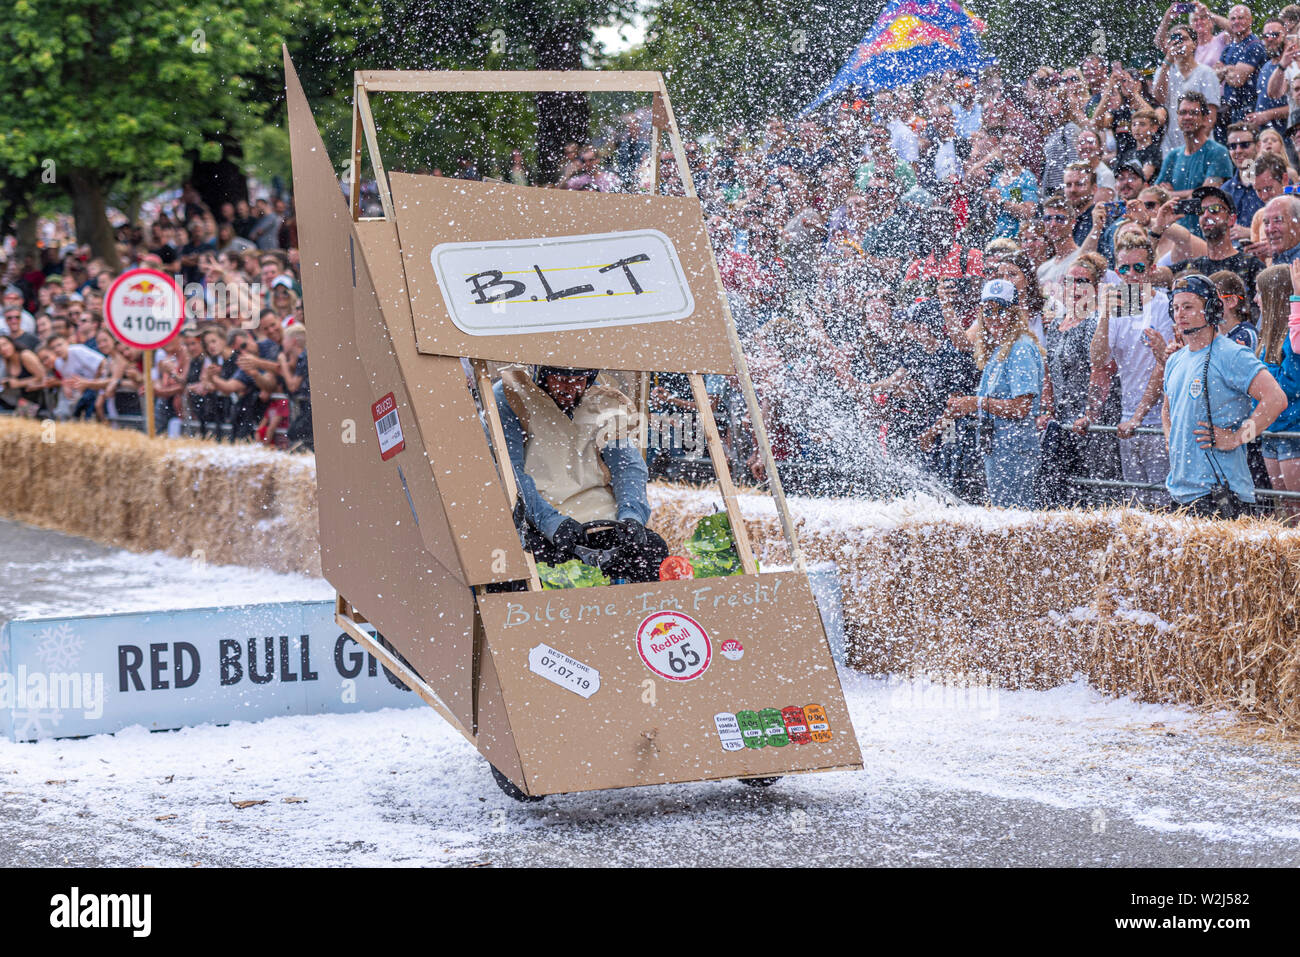 blt-sandwich-pack-competing-in-the-red-bull-soapbox-race-2019-at-alexandra-park-london-uk-jumping-over-ramp-with-people-W2J582.jpg